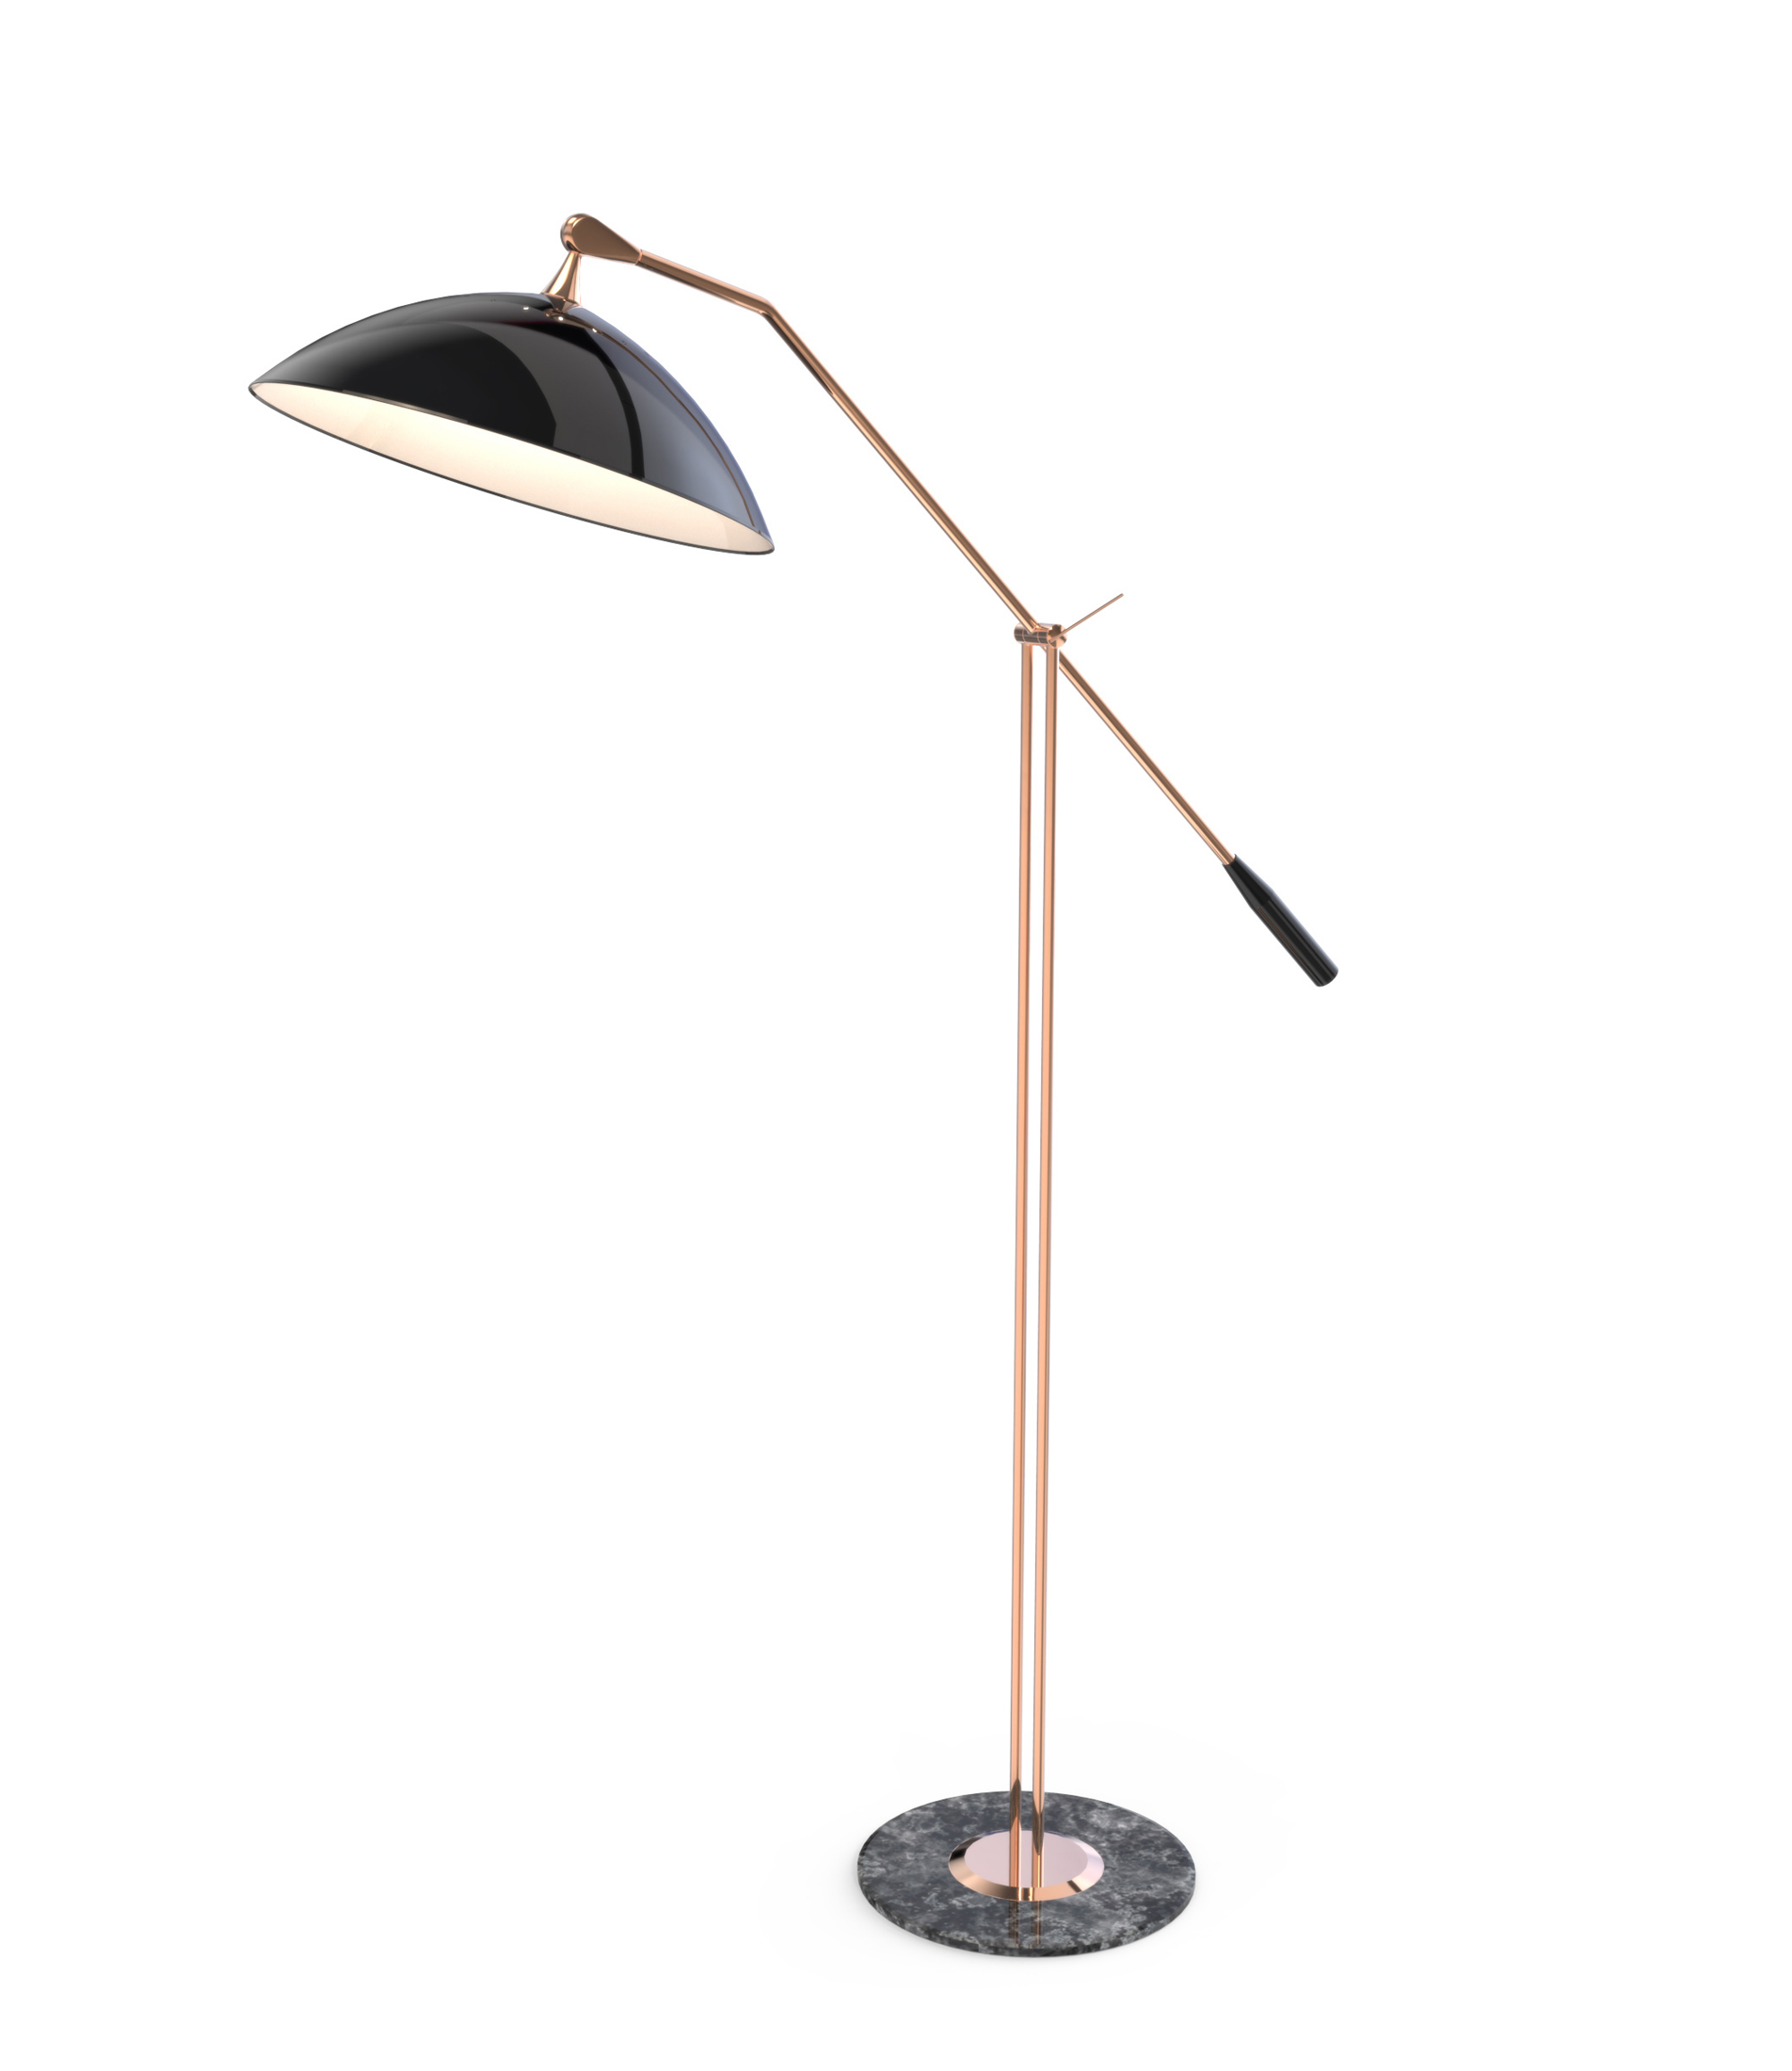 Bright Ideas The Perfect Floor Lamp for Your Scandinavian Design 1 modern floor lamp Bright Ideas: The Perfect Modern Floor Lamp for A Scandinavian Design Bright Ideas The Perfect Modern Floor Lamp for Your Scandinavian Design 2